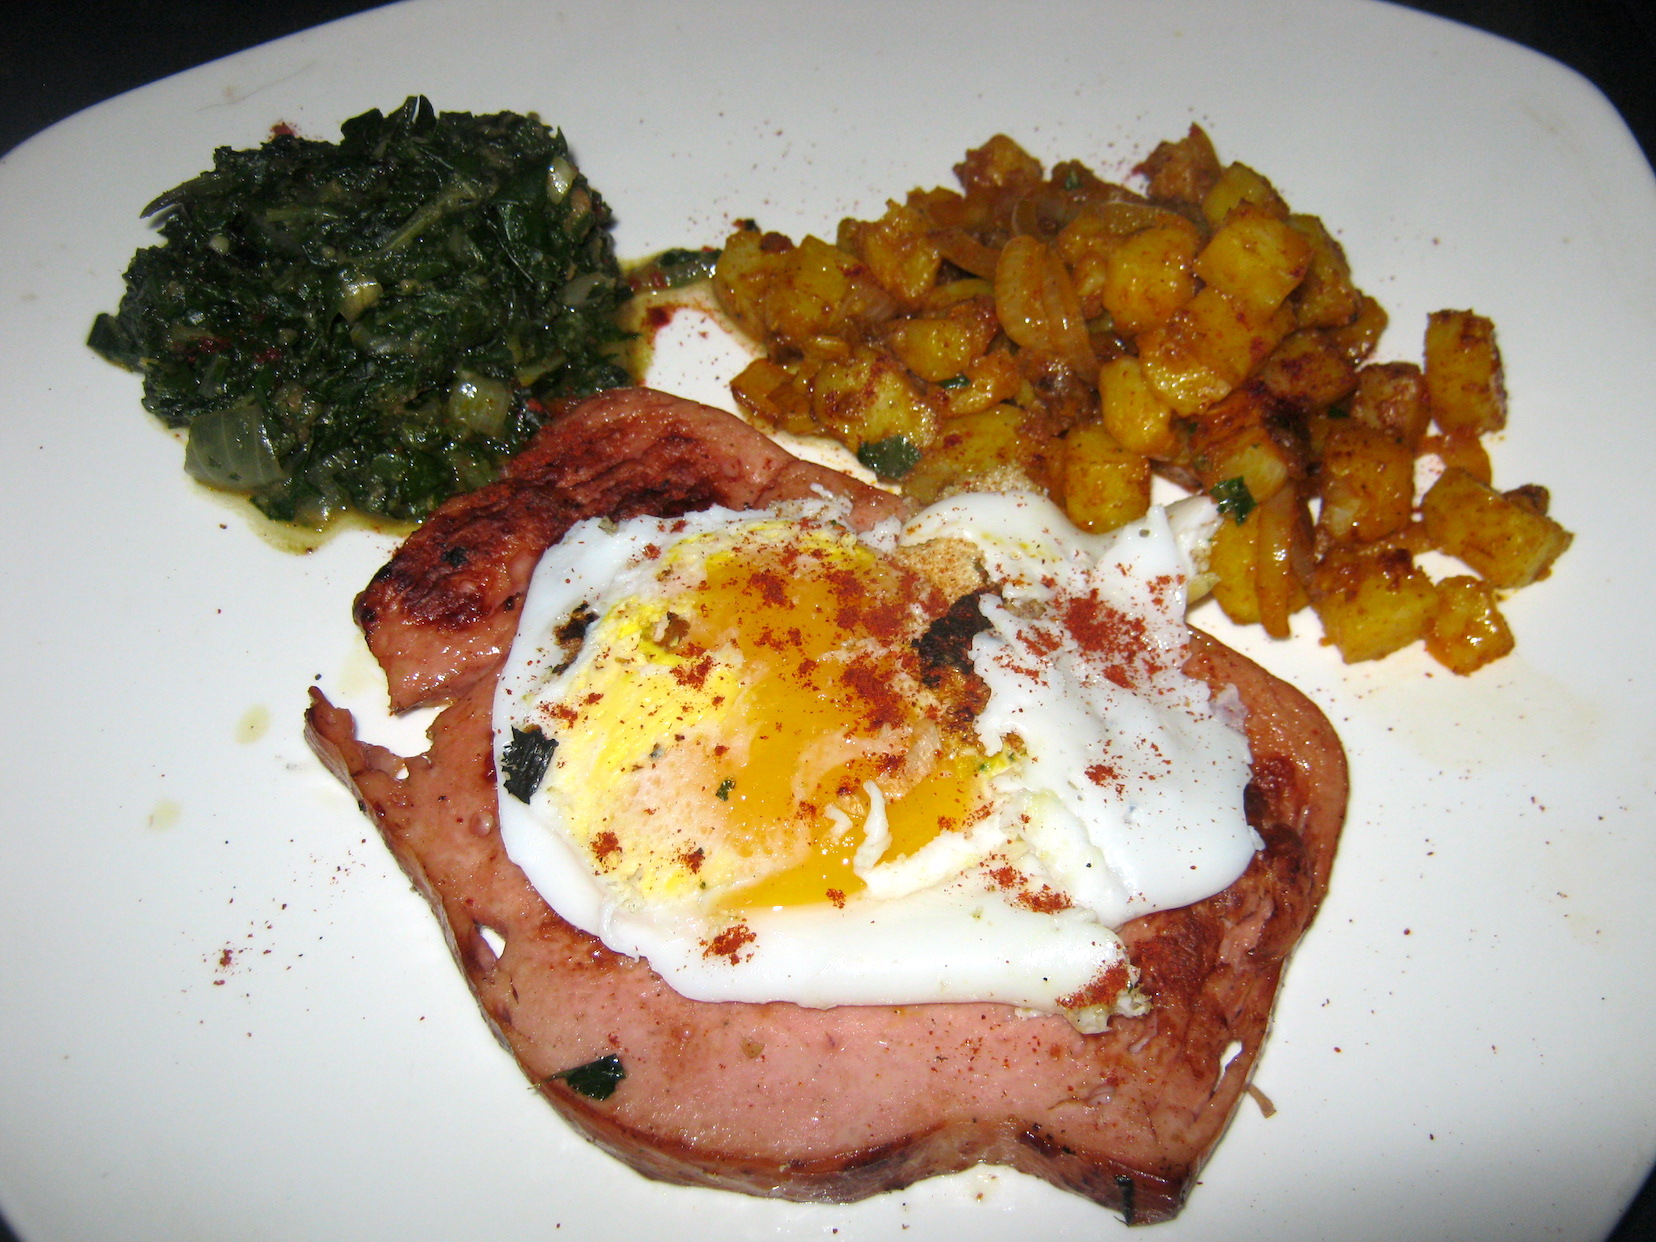 Liver Loaf with Pan Fried Potatoes, Eggs and Chard